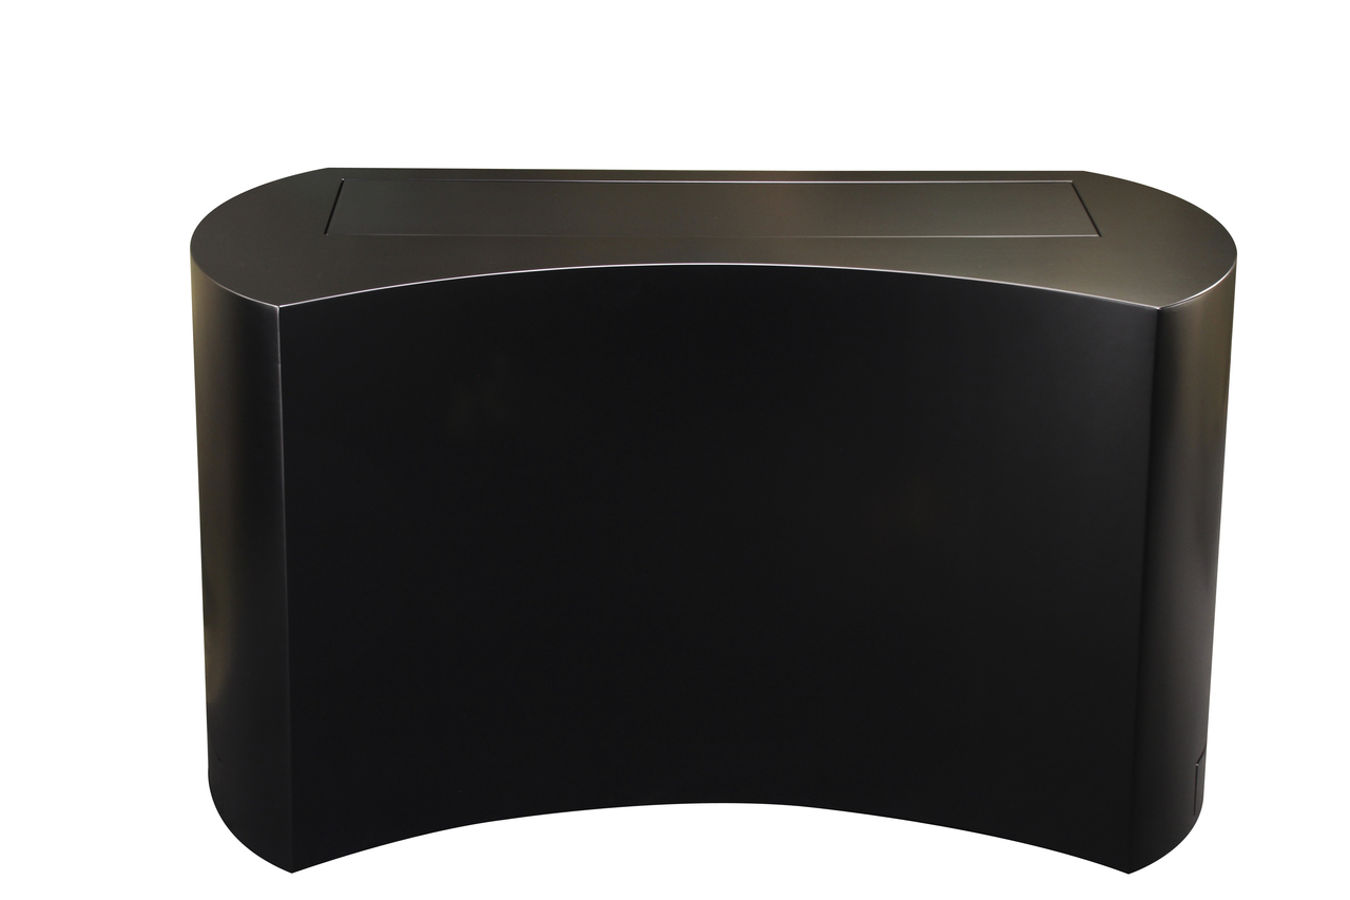 remote controlled television lift kit cabinet is found houzz made by cabinet tronix in us